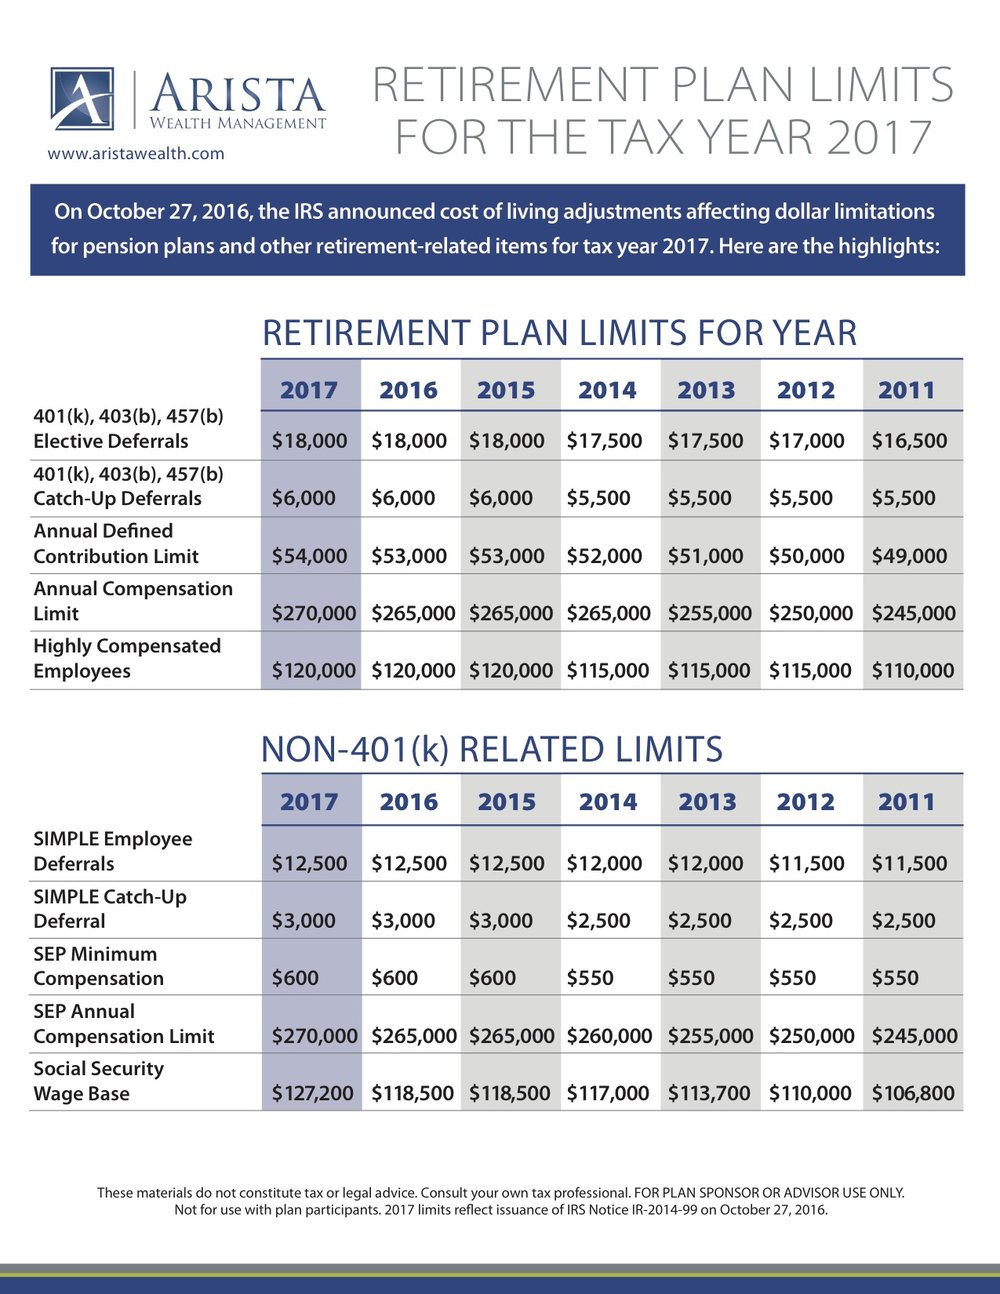 401(k) & Retirement Plan Limits for 2017